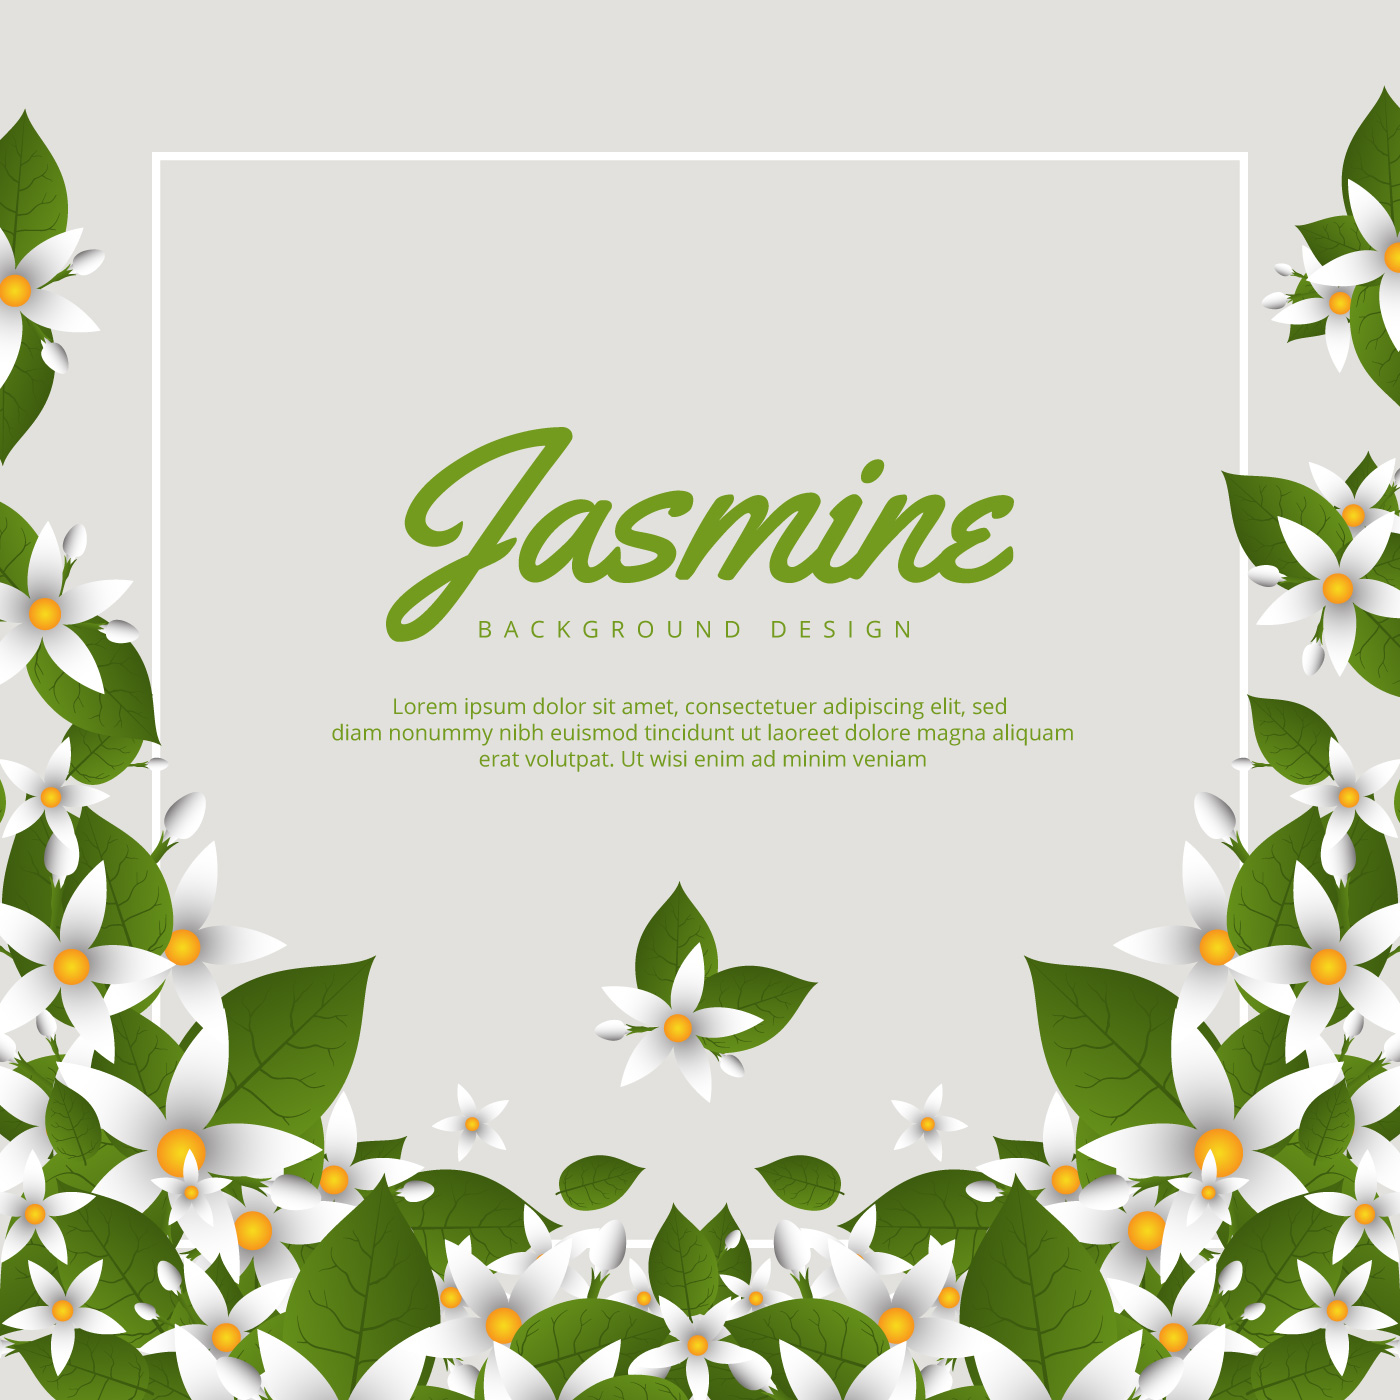 Jasmine Flower Free Vector Art 8750 Free Downloads